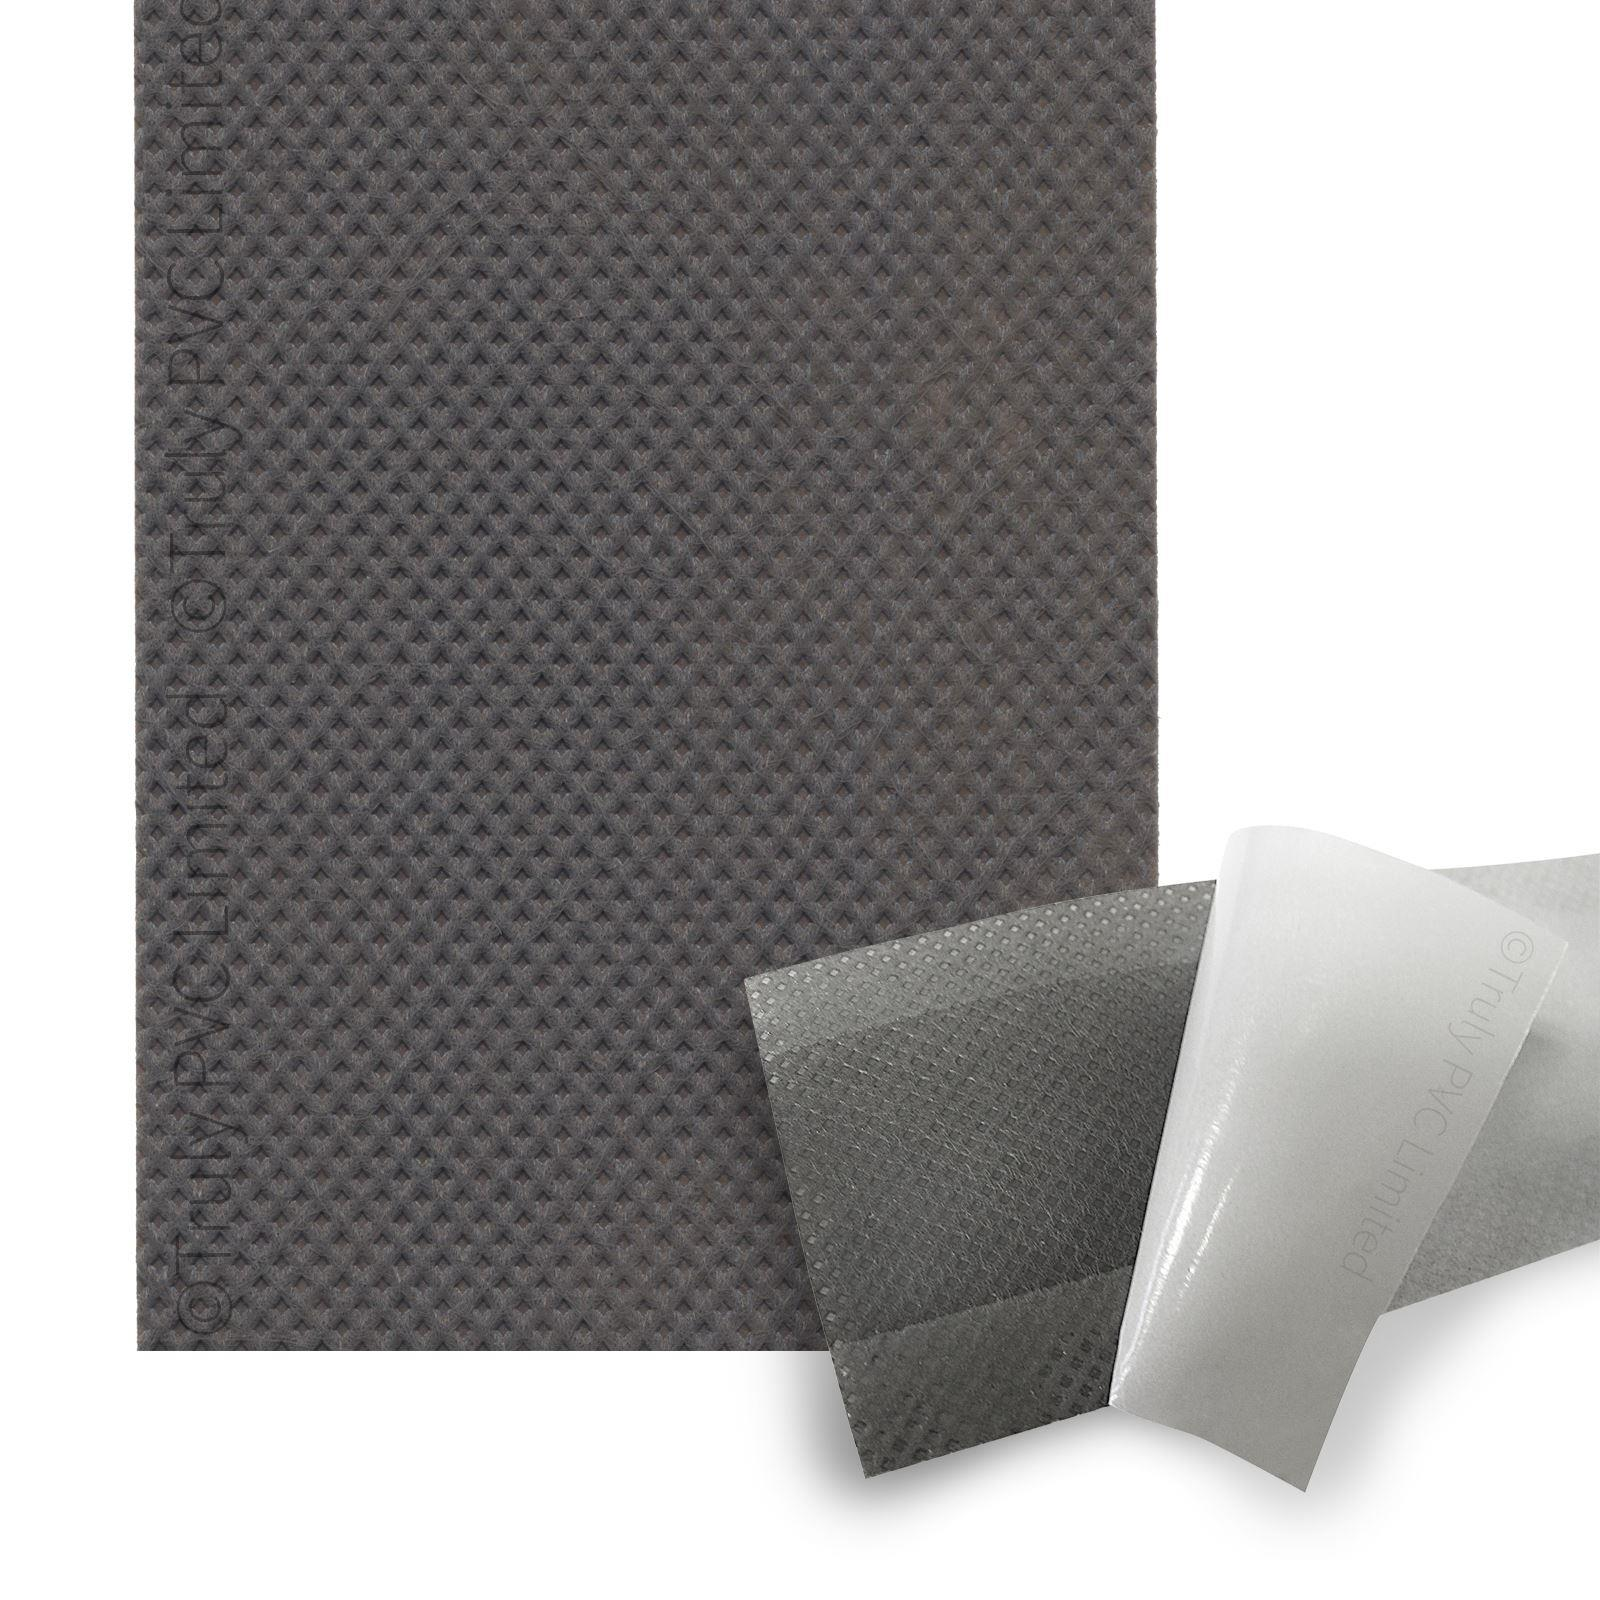 5m Of 60mm Anti Dust Breather Filter Tape For 35mm